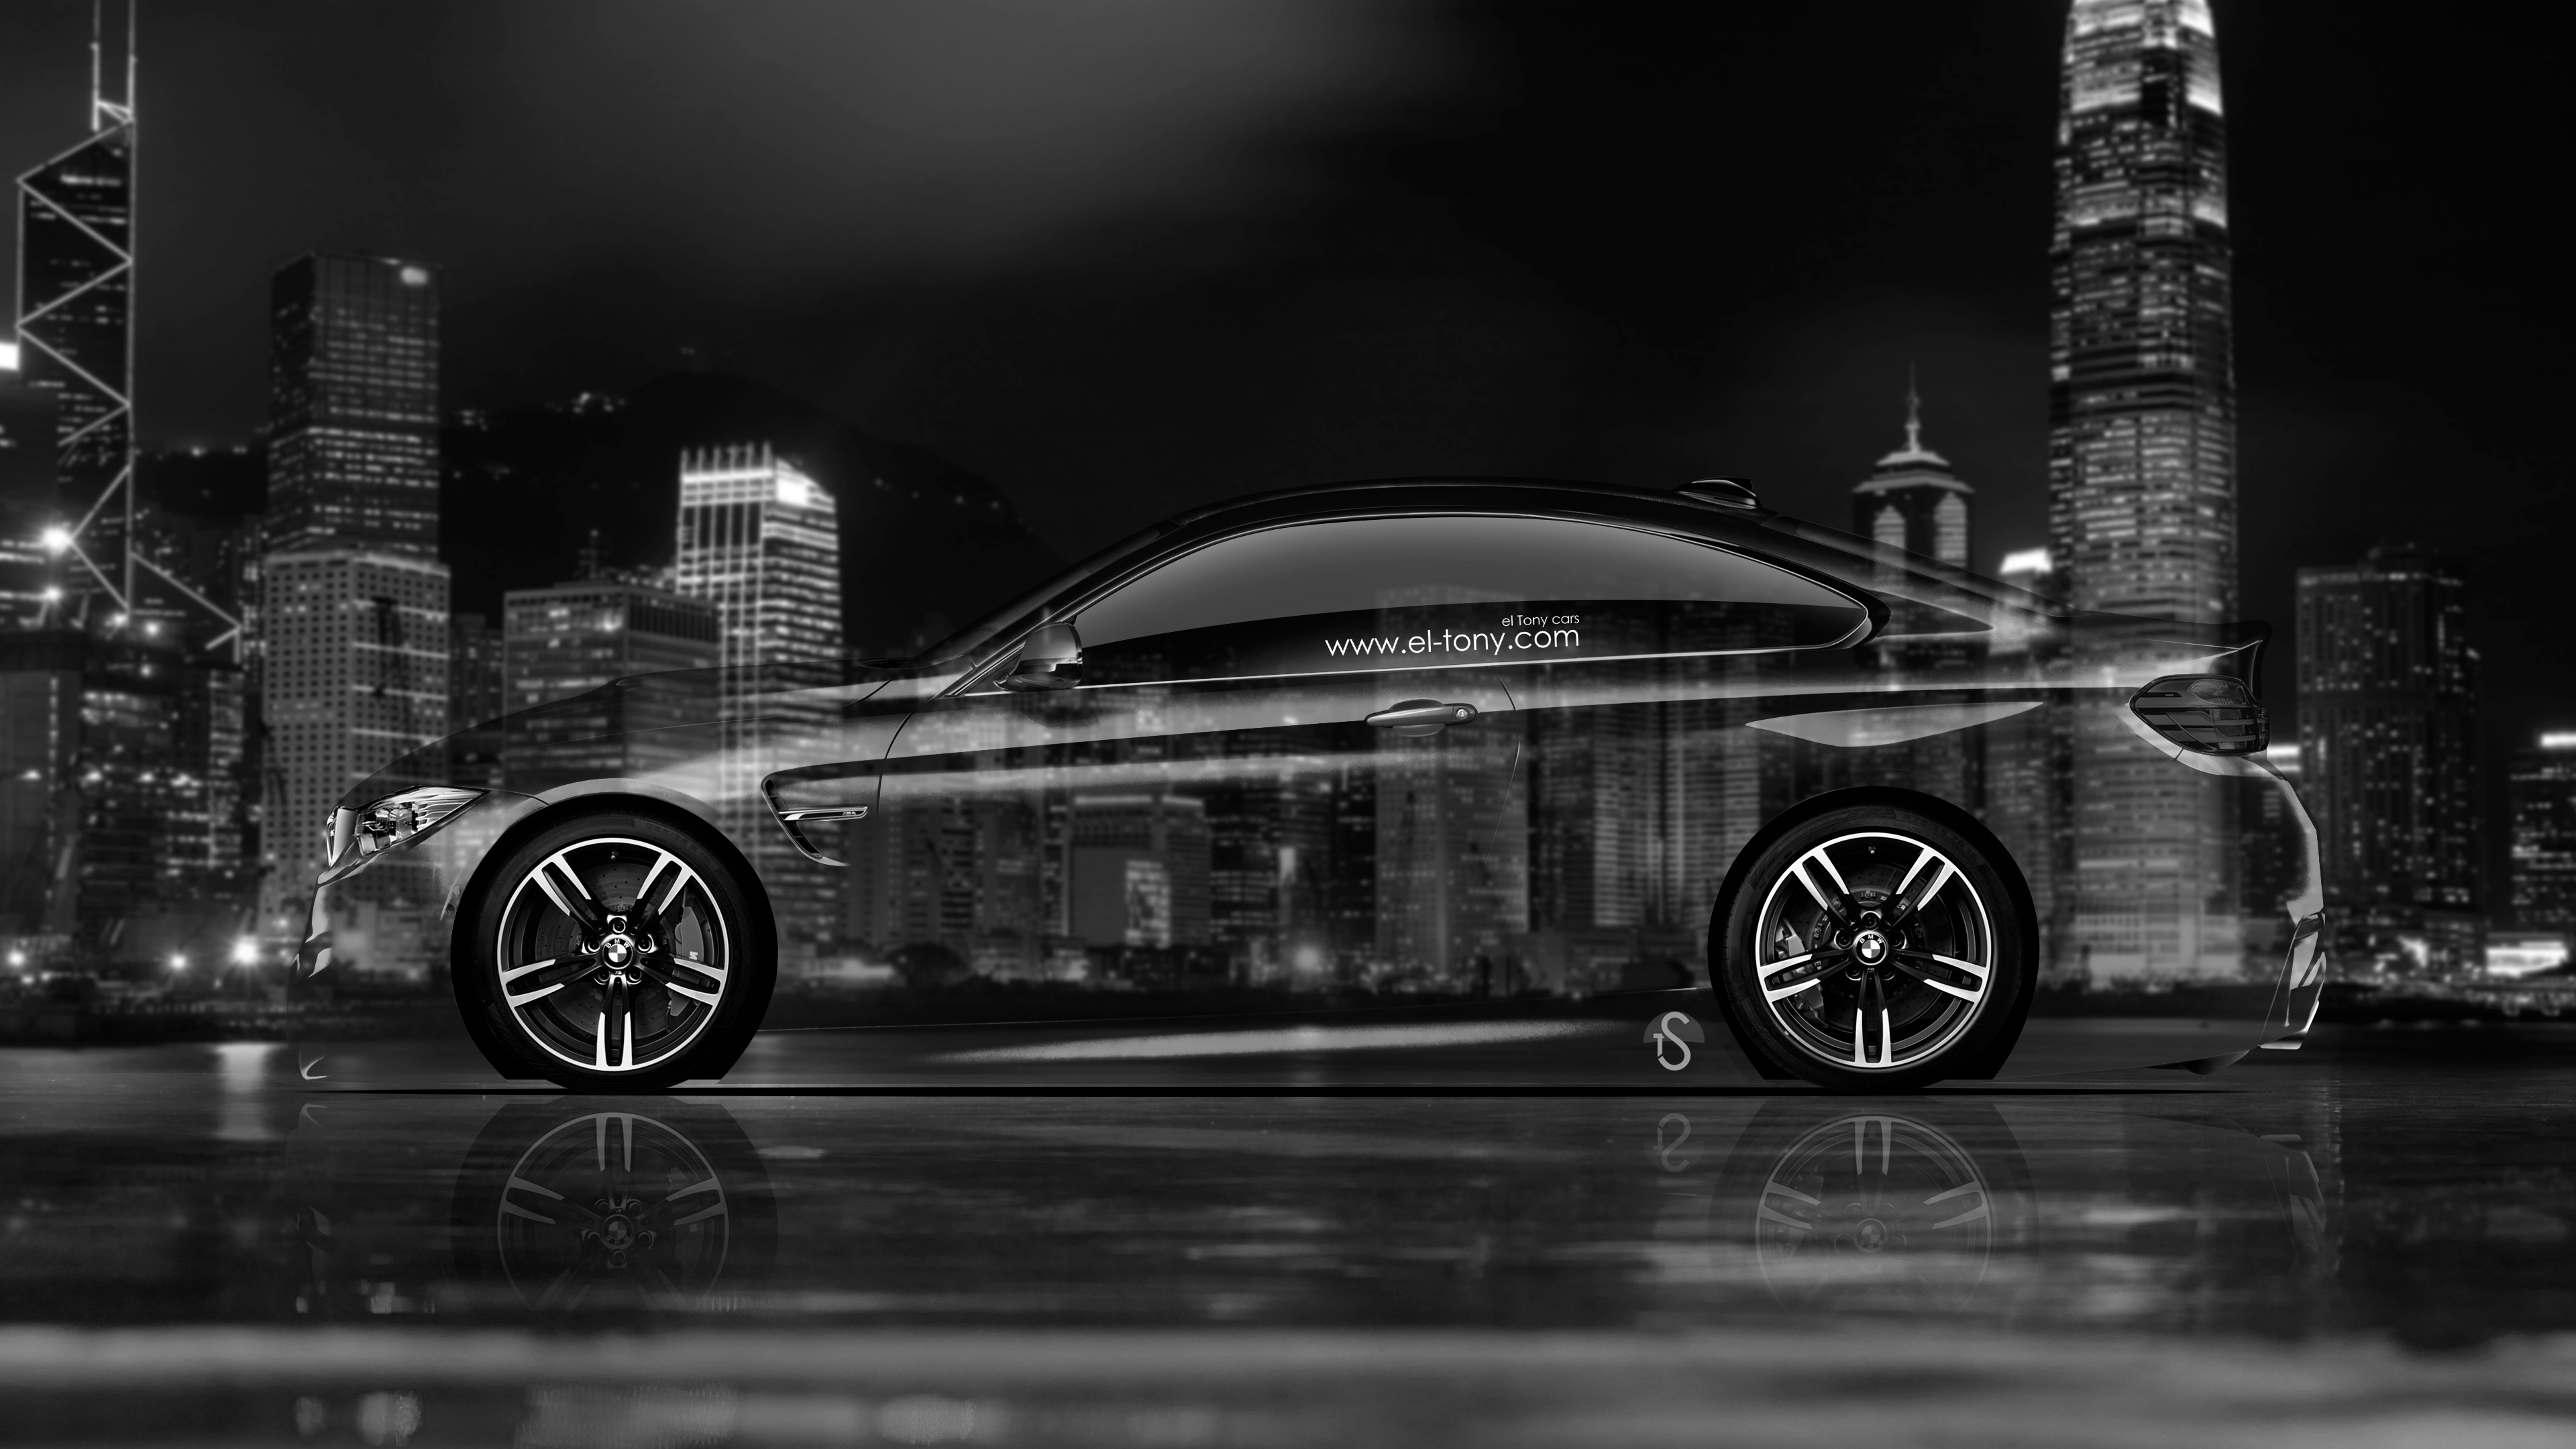 BMW-M4-Coupe-Side-Crystal-City-Car-2014-Black-White-4K-Wallpapers-design-by-Tony-Kokhan-www.el-tony.com_